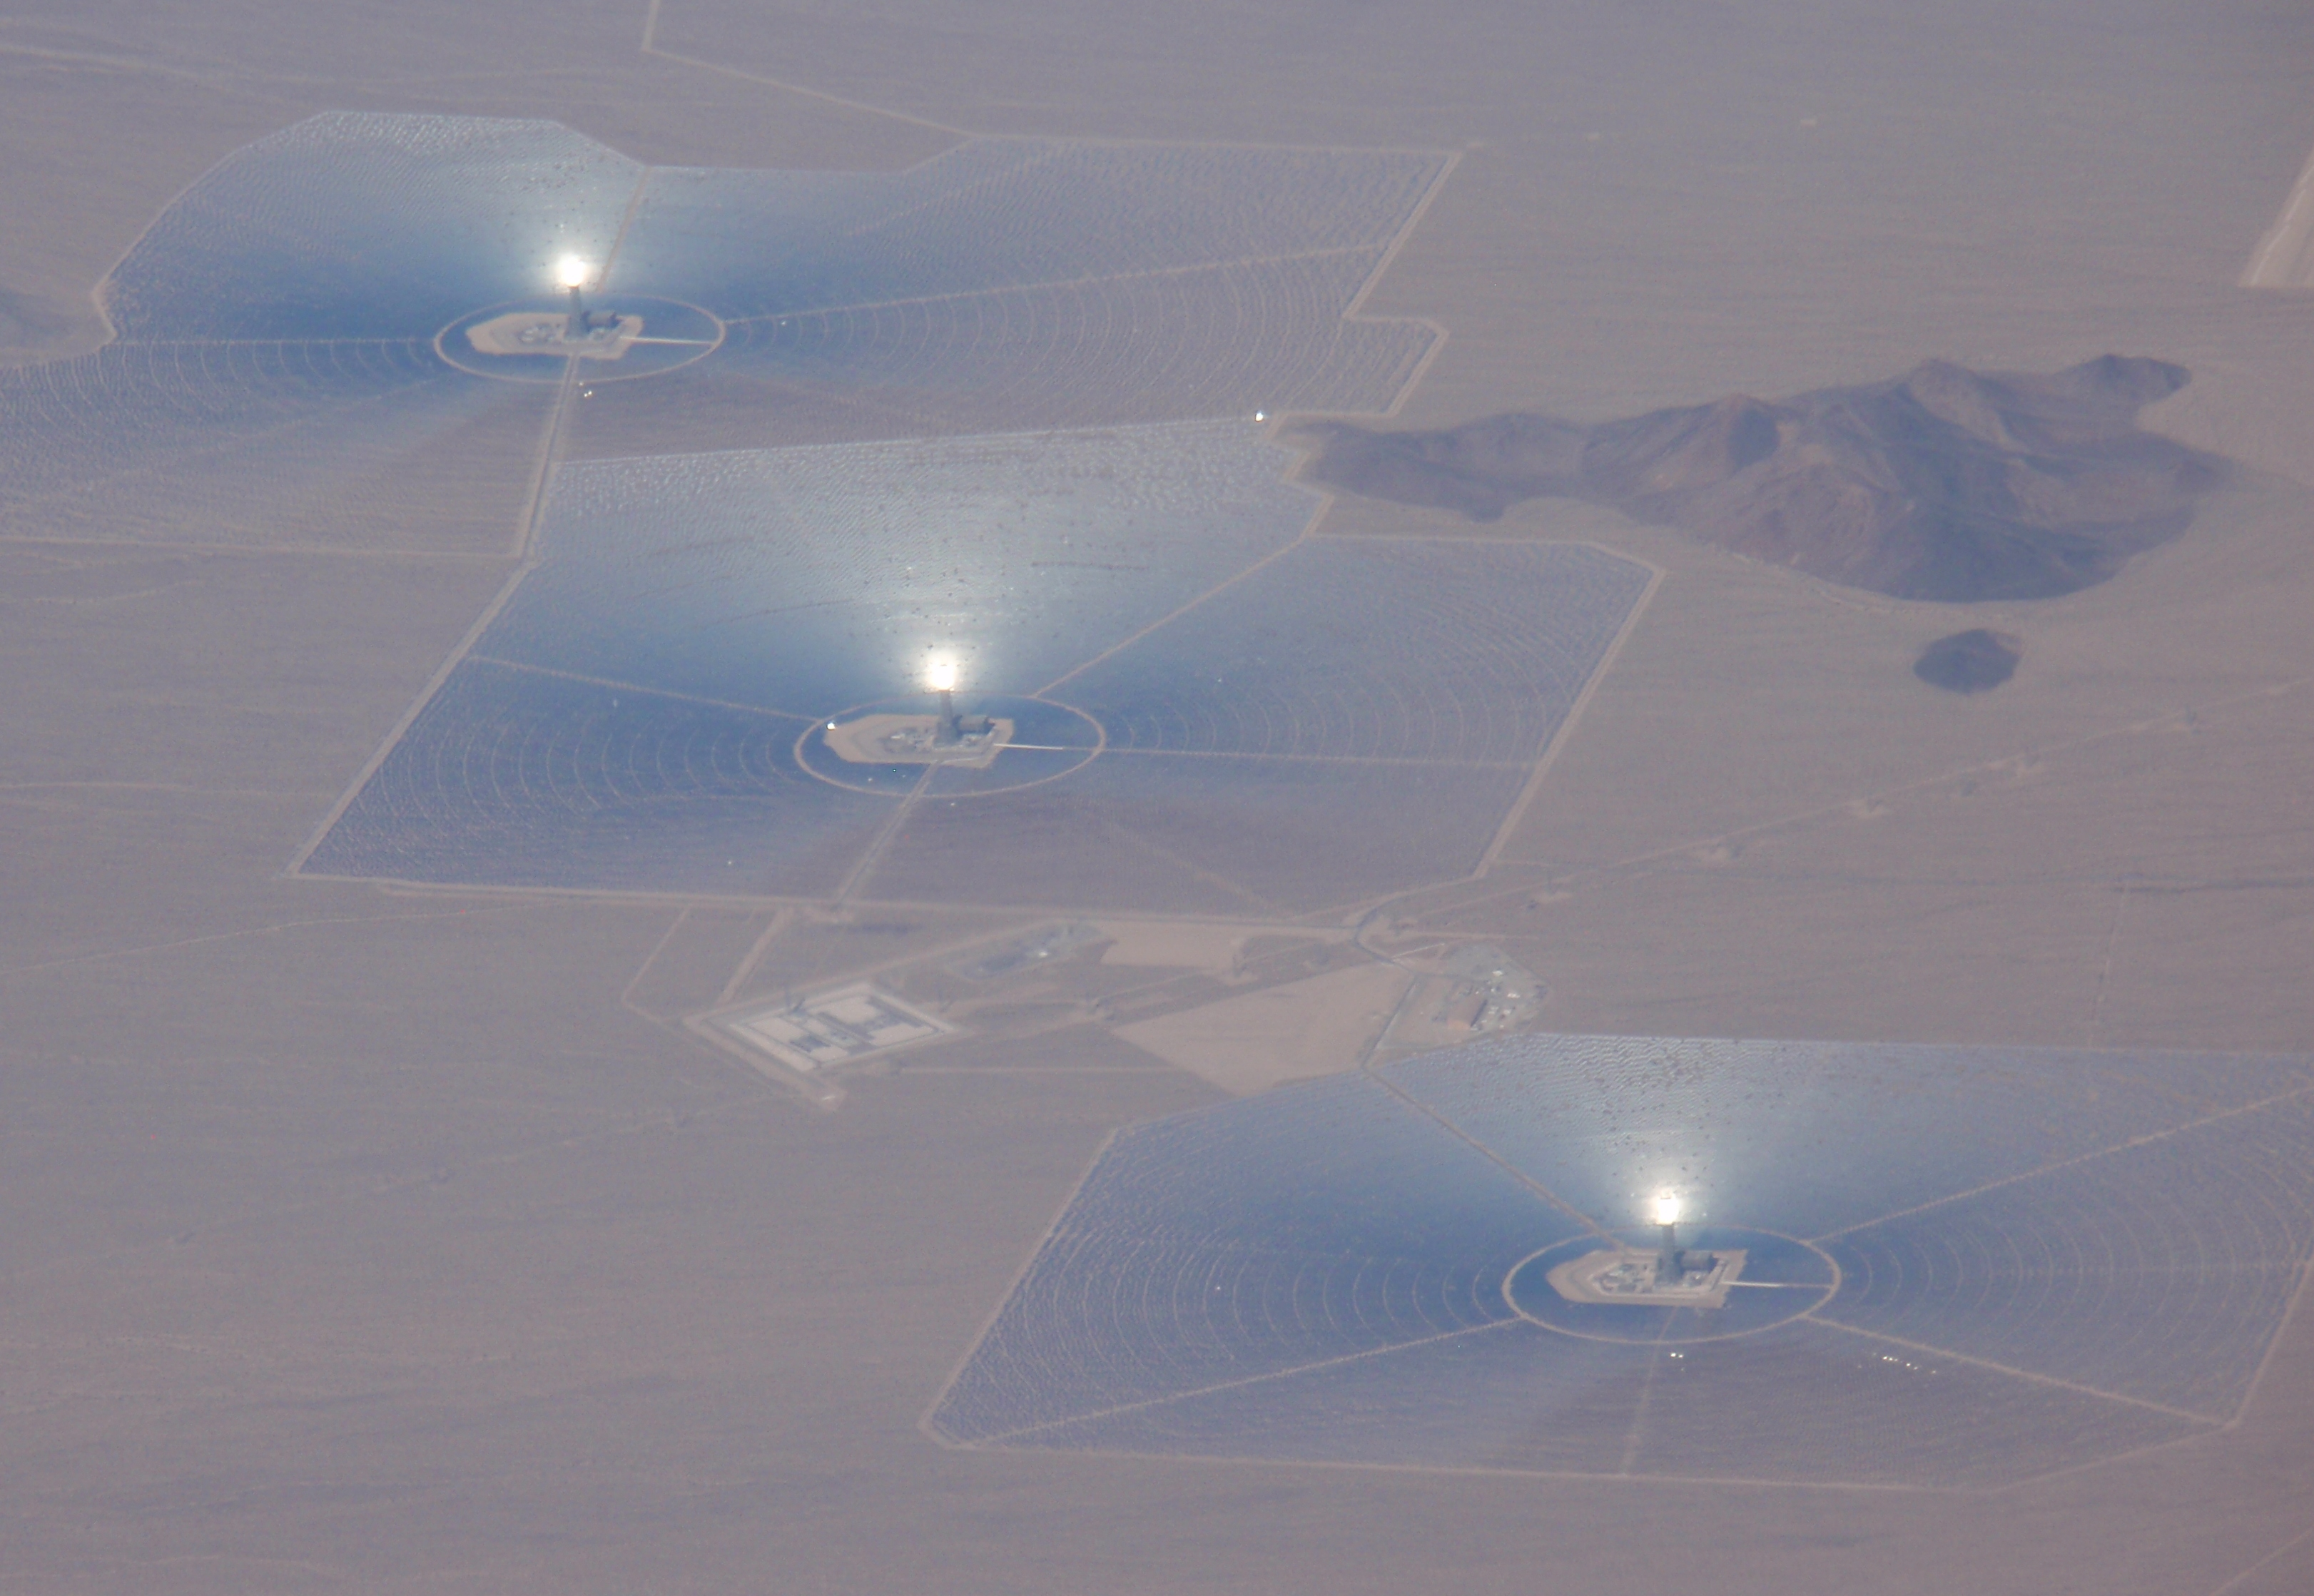 Ivanpah Solar Electric Generating System. November 2016 photo by James Ulvog.